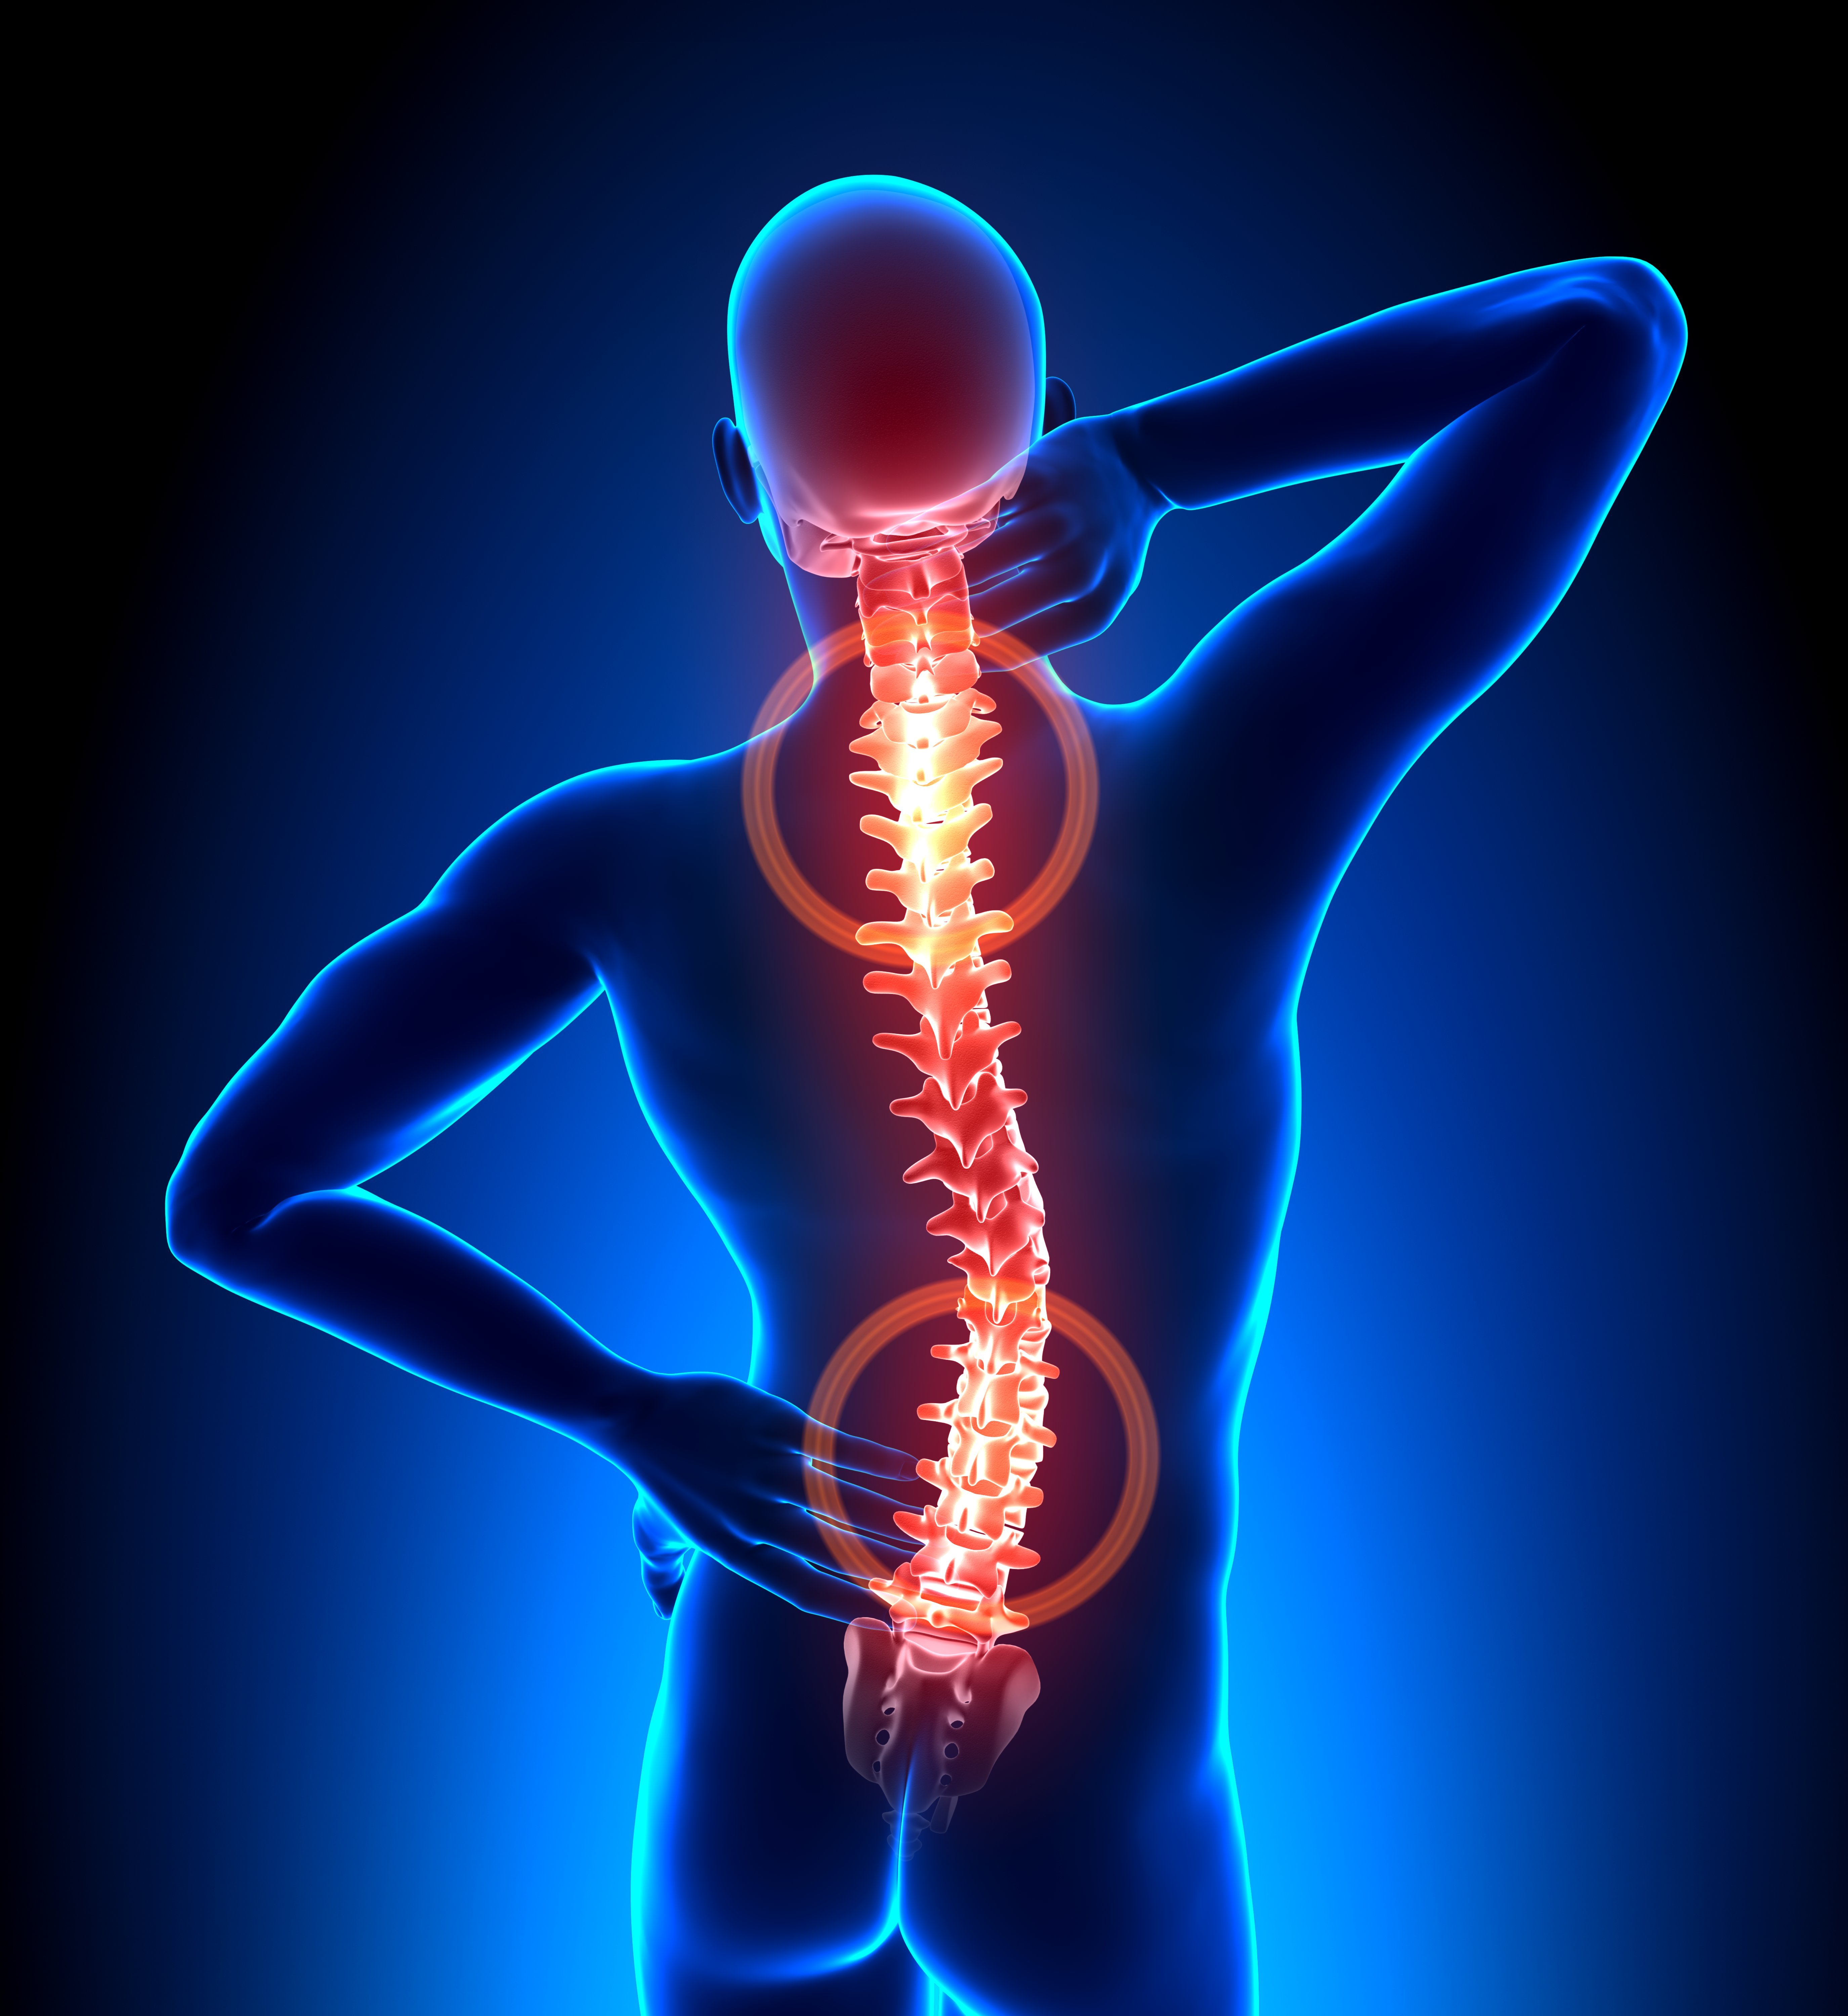 Top of spine and lower back highlighted to show where back pain can occur.